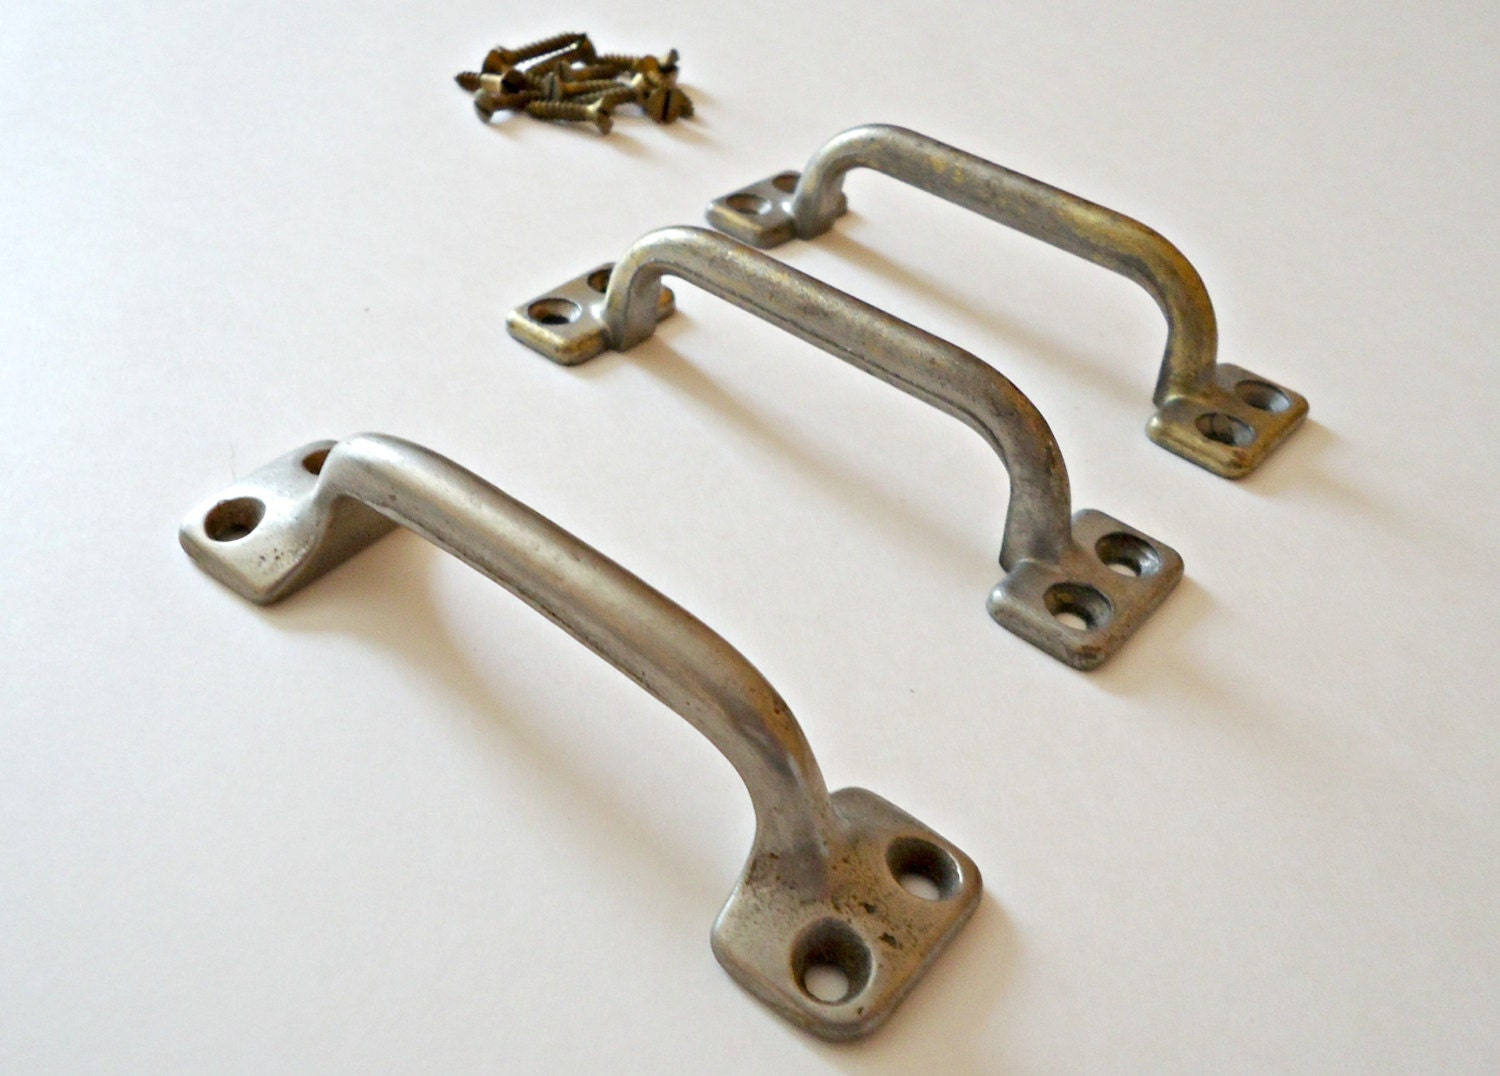 3 Vintage Drawer Pulls Metal Handles Drawer Pull Industrial